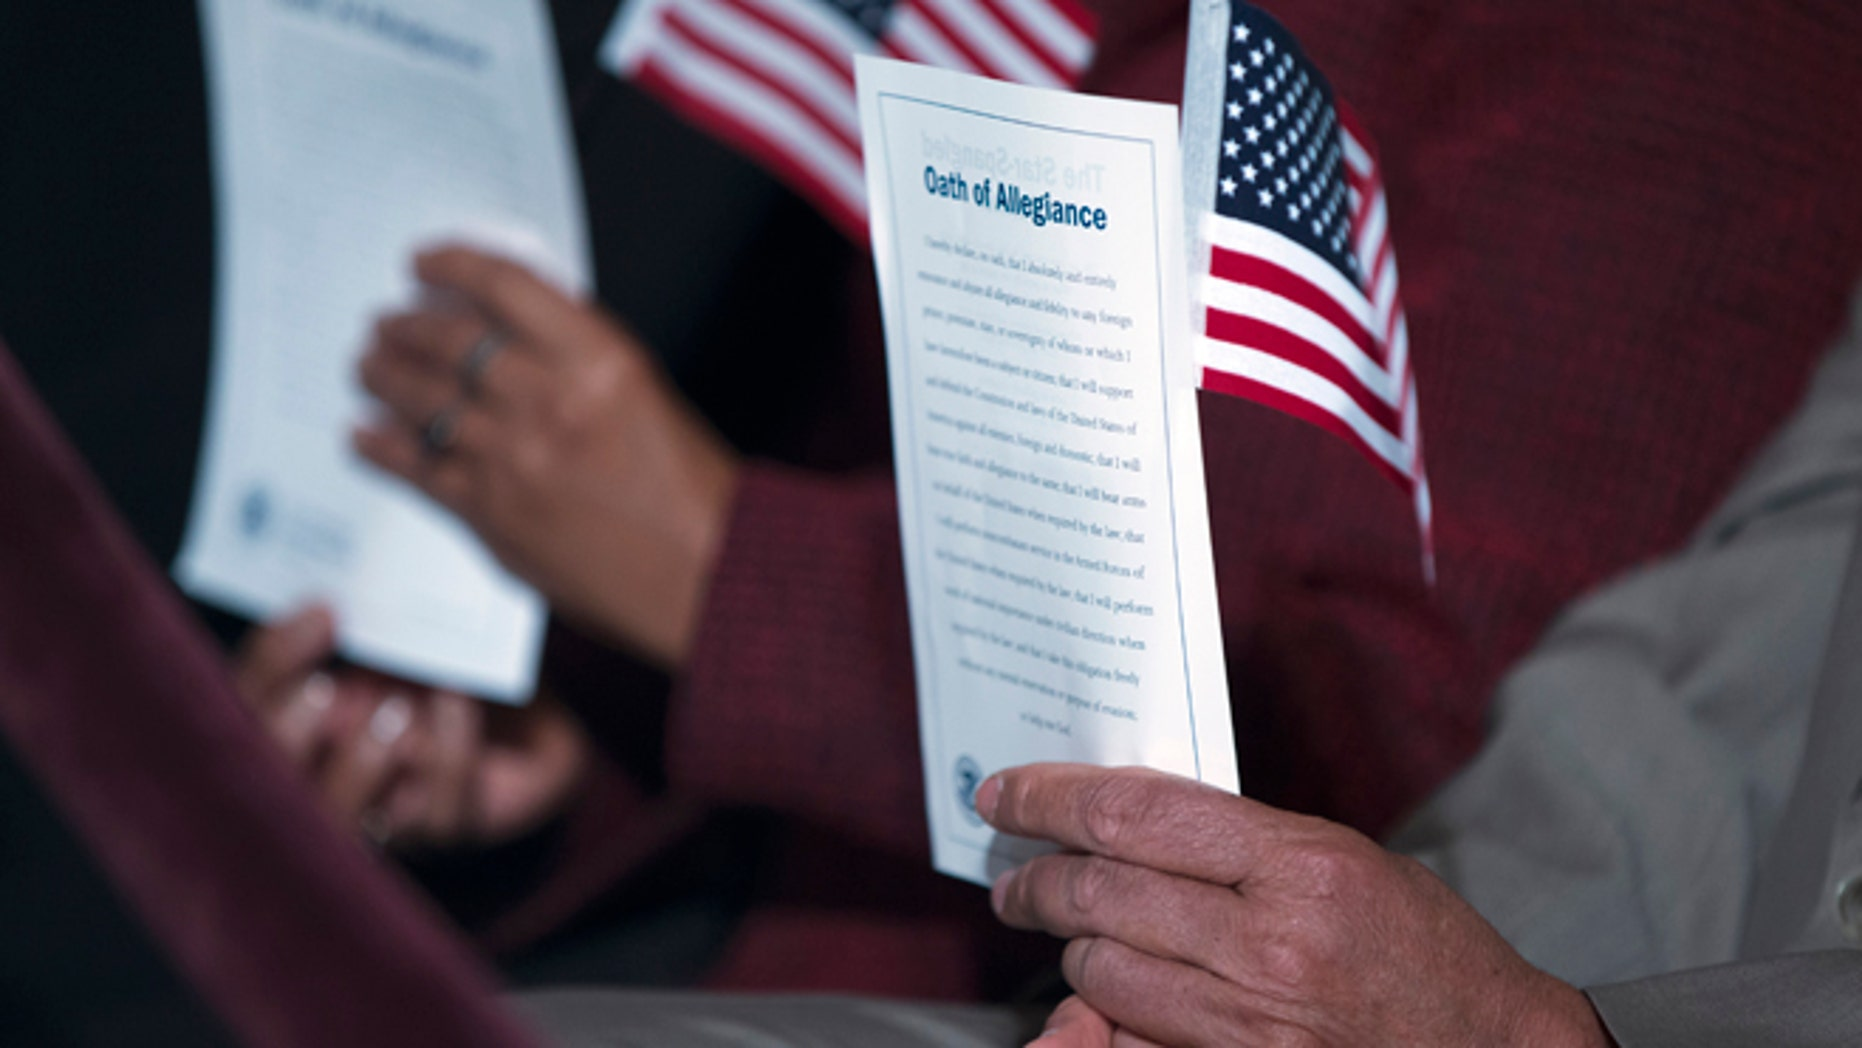 "In this Dec. 15, 2015, photo, participants hold the ""Oath of Allegiance"" and American flags during a naturalization ceremony attended by President Barack Obama at the National Archives in Washington. More Americans favor than oppose a pathway to citizenship for immigrants who are living in the United States illegally, a new Associated Press-GfK poll shows. While most Republicans oppose such a path to citizenship, it doesn't seem to be a dealbreaker issue for them.  (AP Photo/Evan Vucci)"